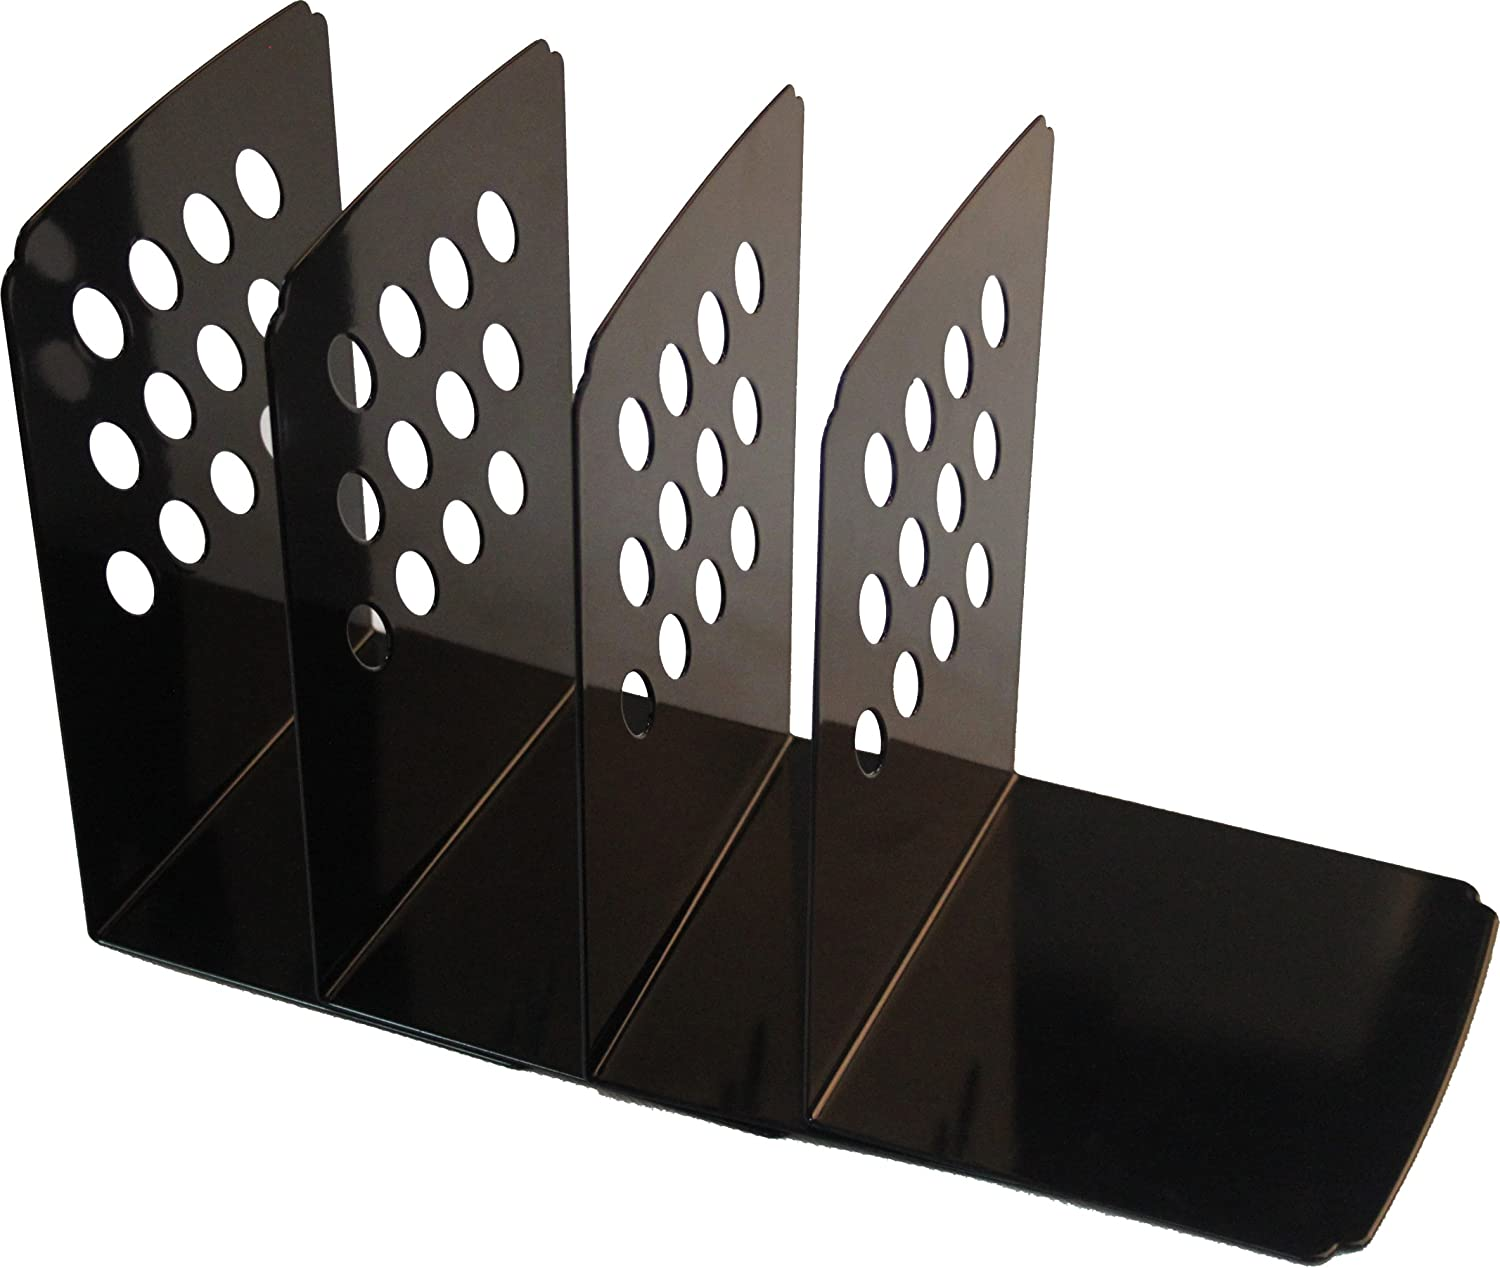 DELI Simply Style Heavy Duty Metal Bookends, 2 Pairs per Package, Black or White Color (6.8 inch Black)